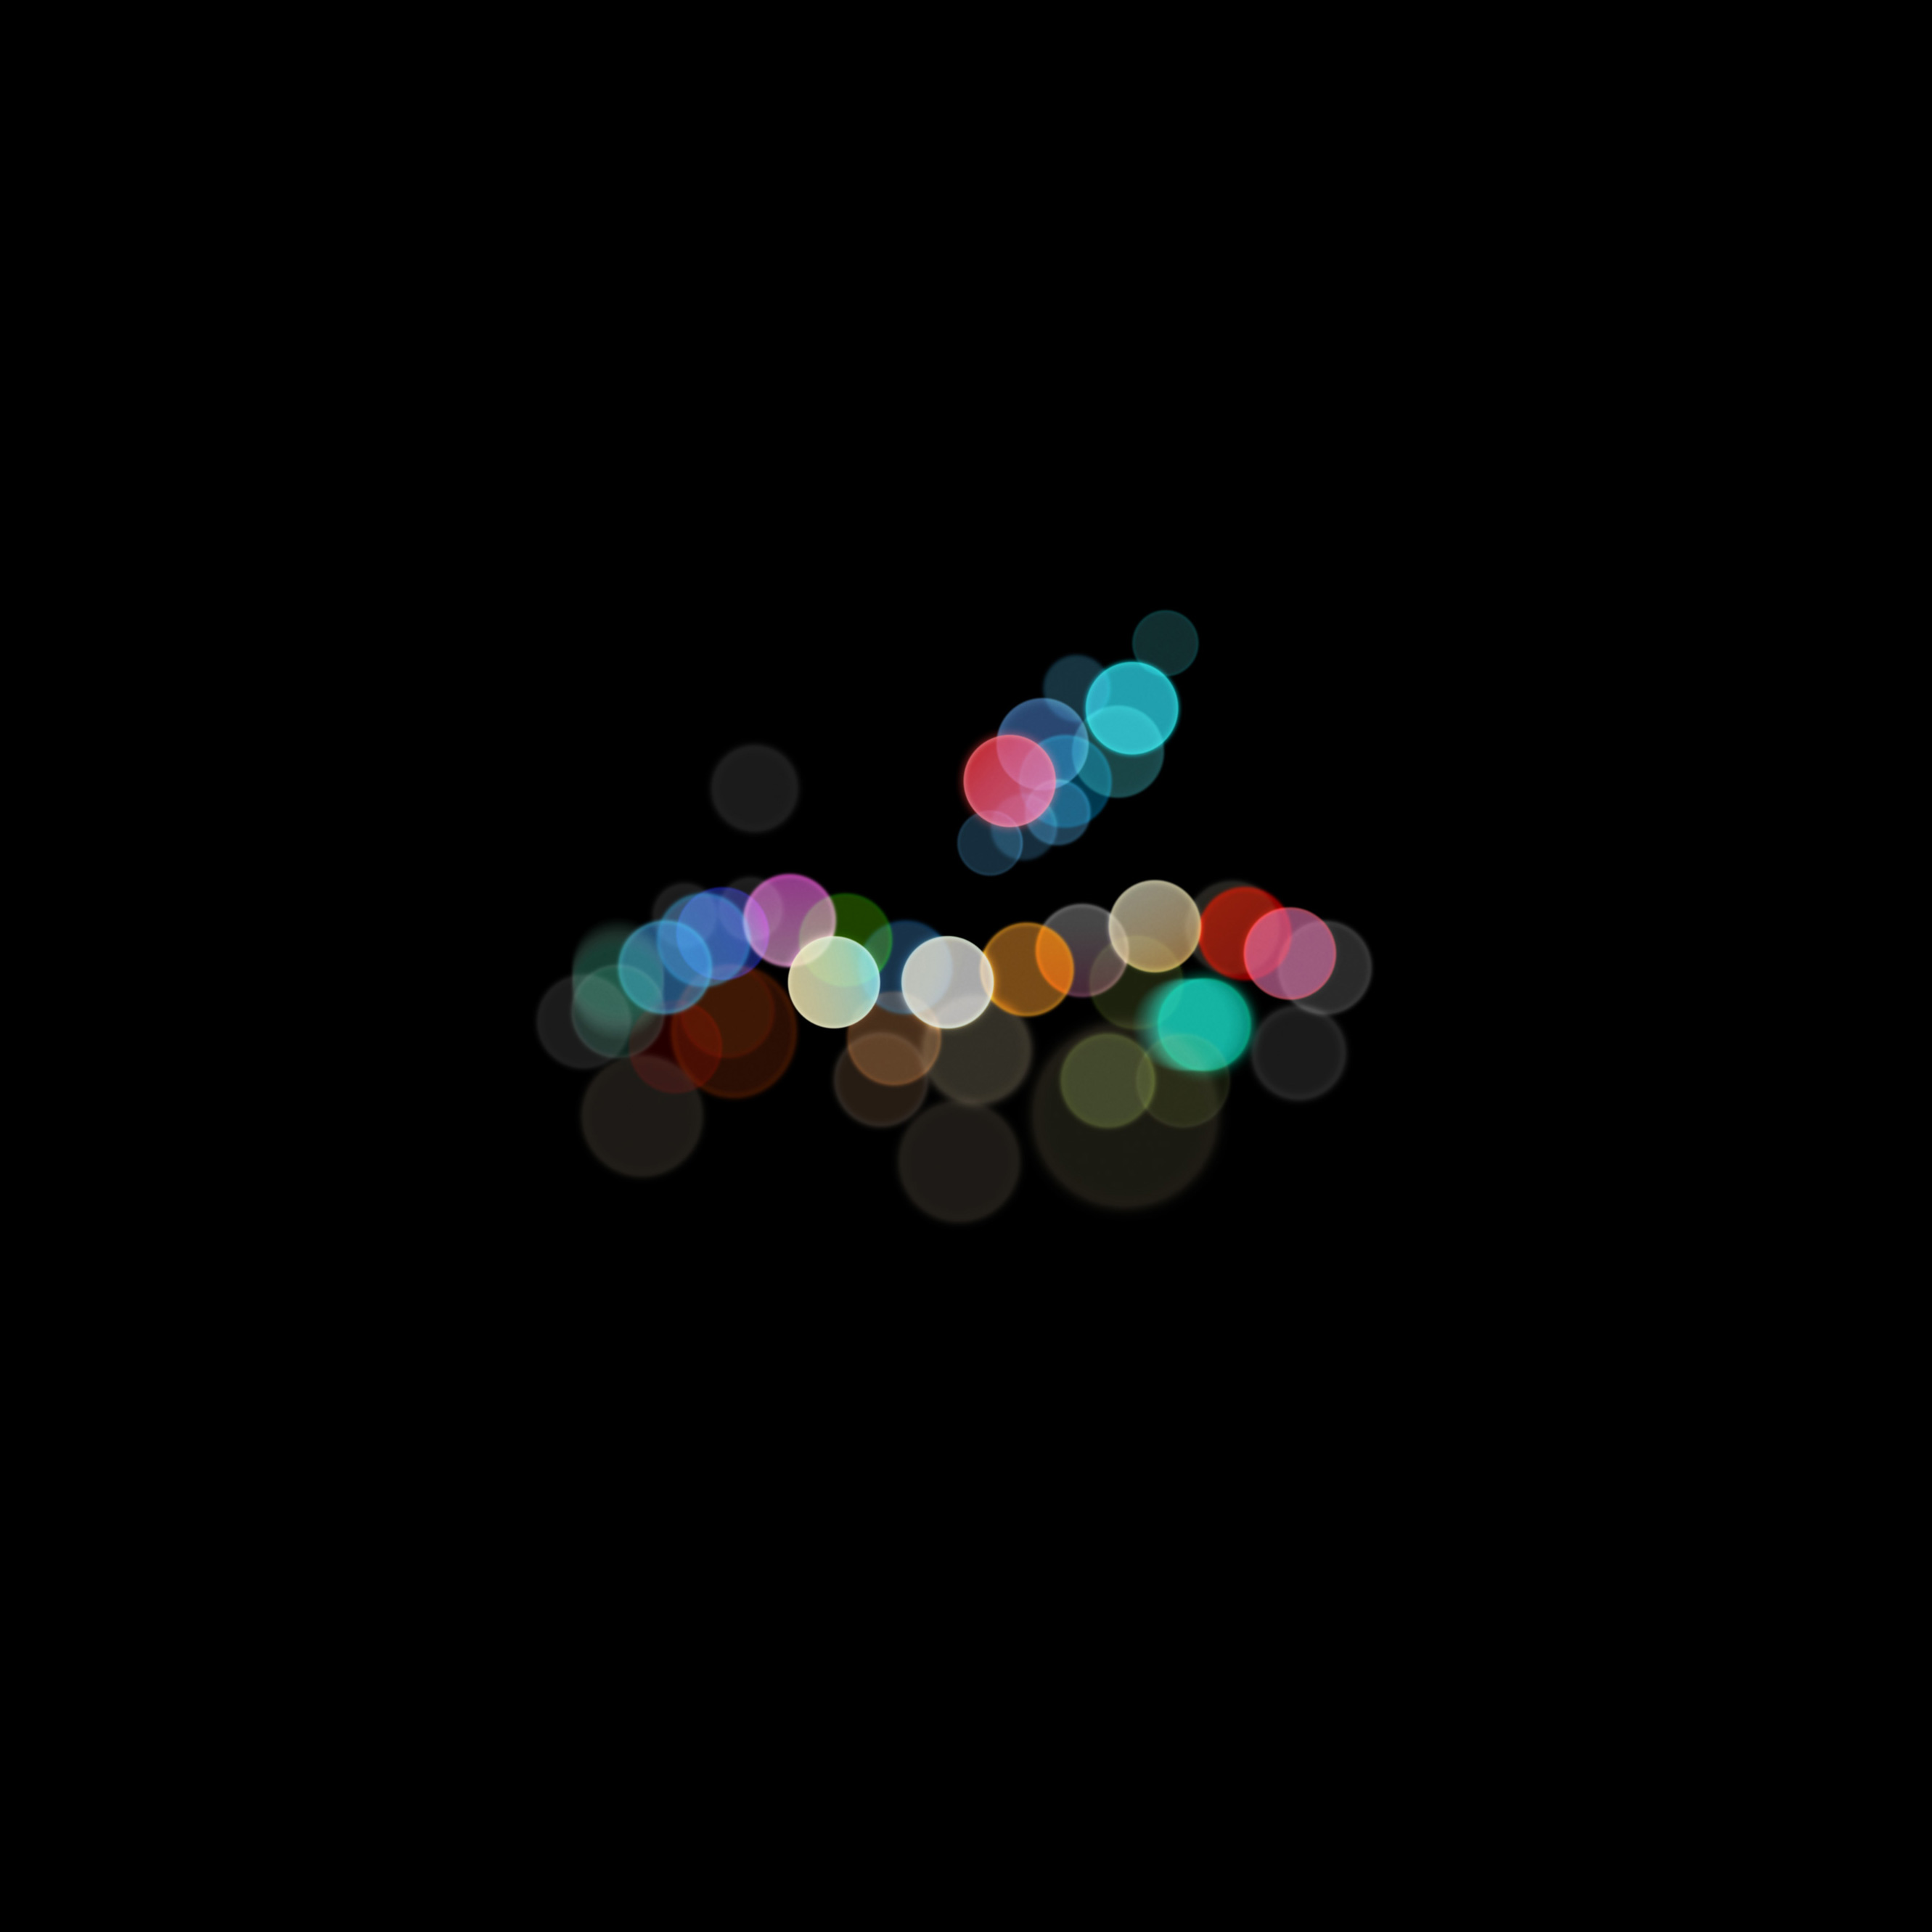 Apple event 1609 2662x2662px